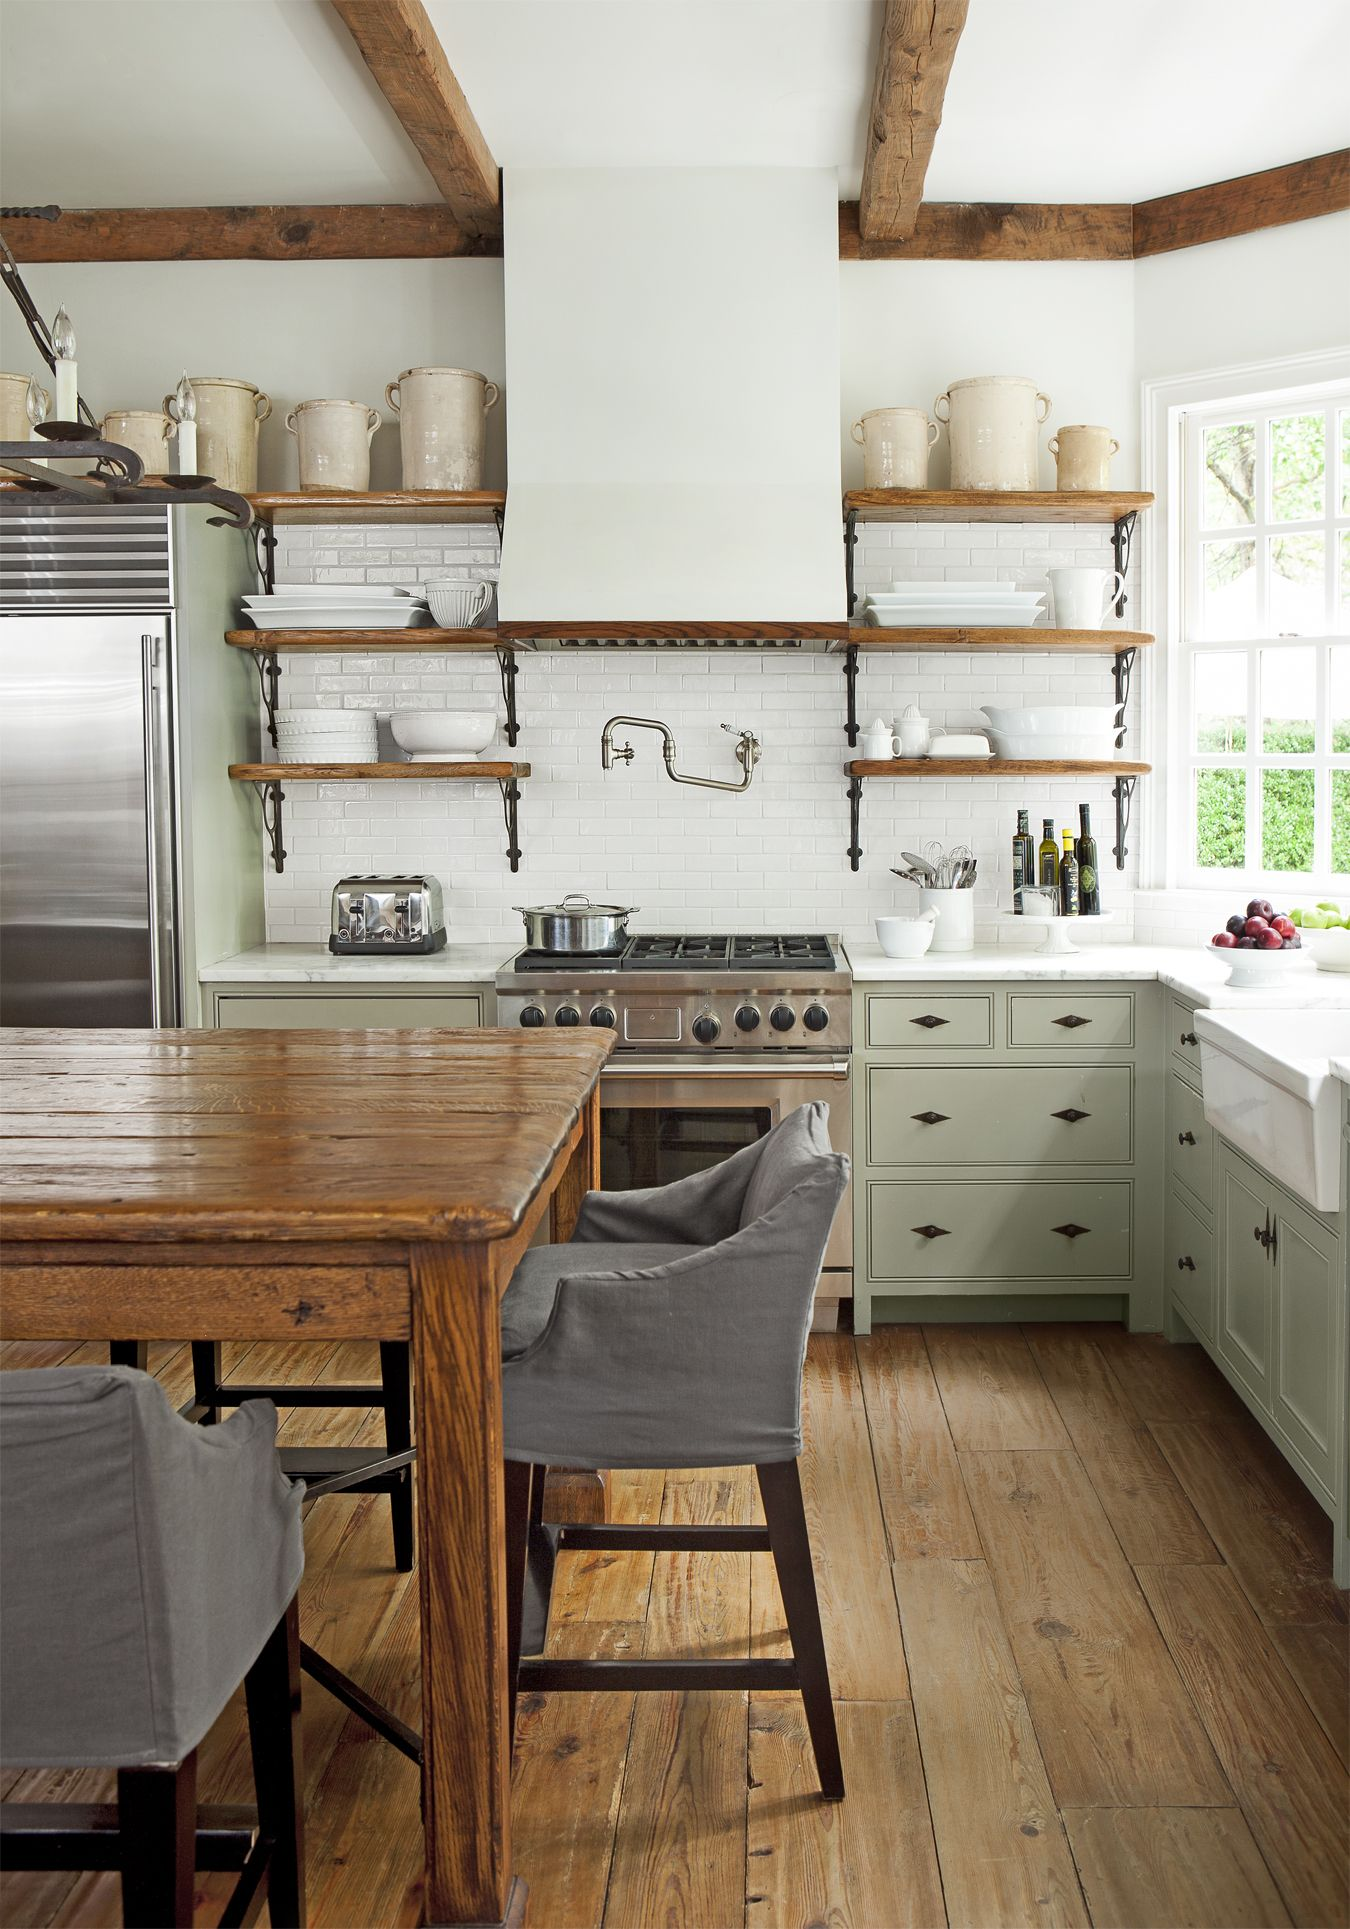 32 Kitchen Trends For 2020 That We Predict Will Be Everywhere Farmhouse Kitchen Inspiration Farmhouse Style